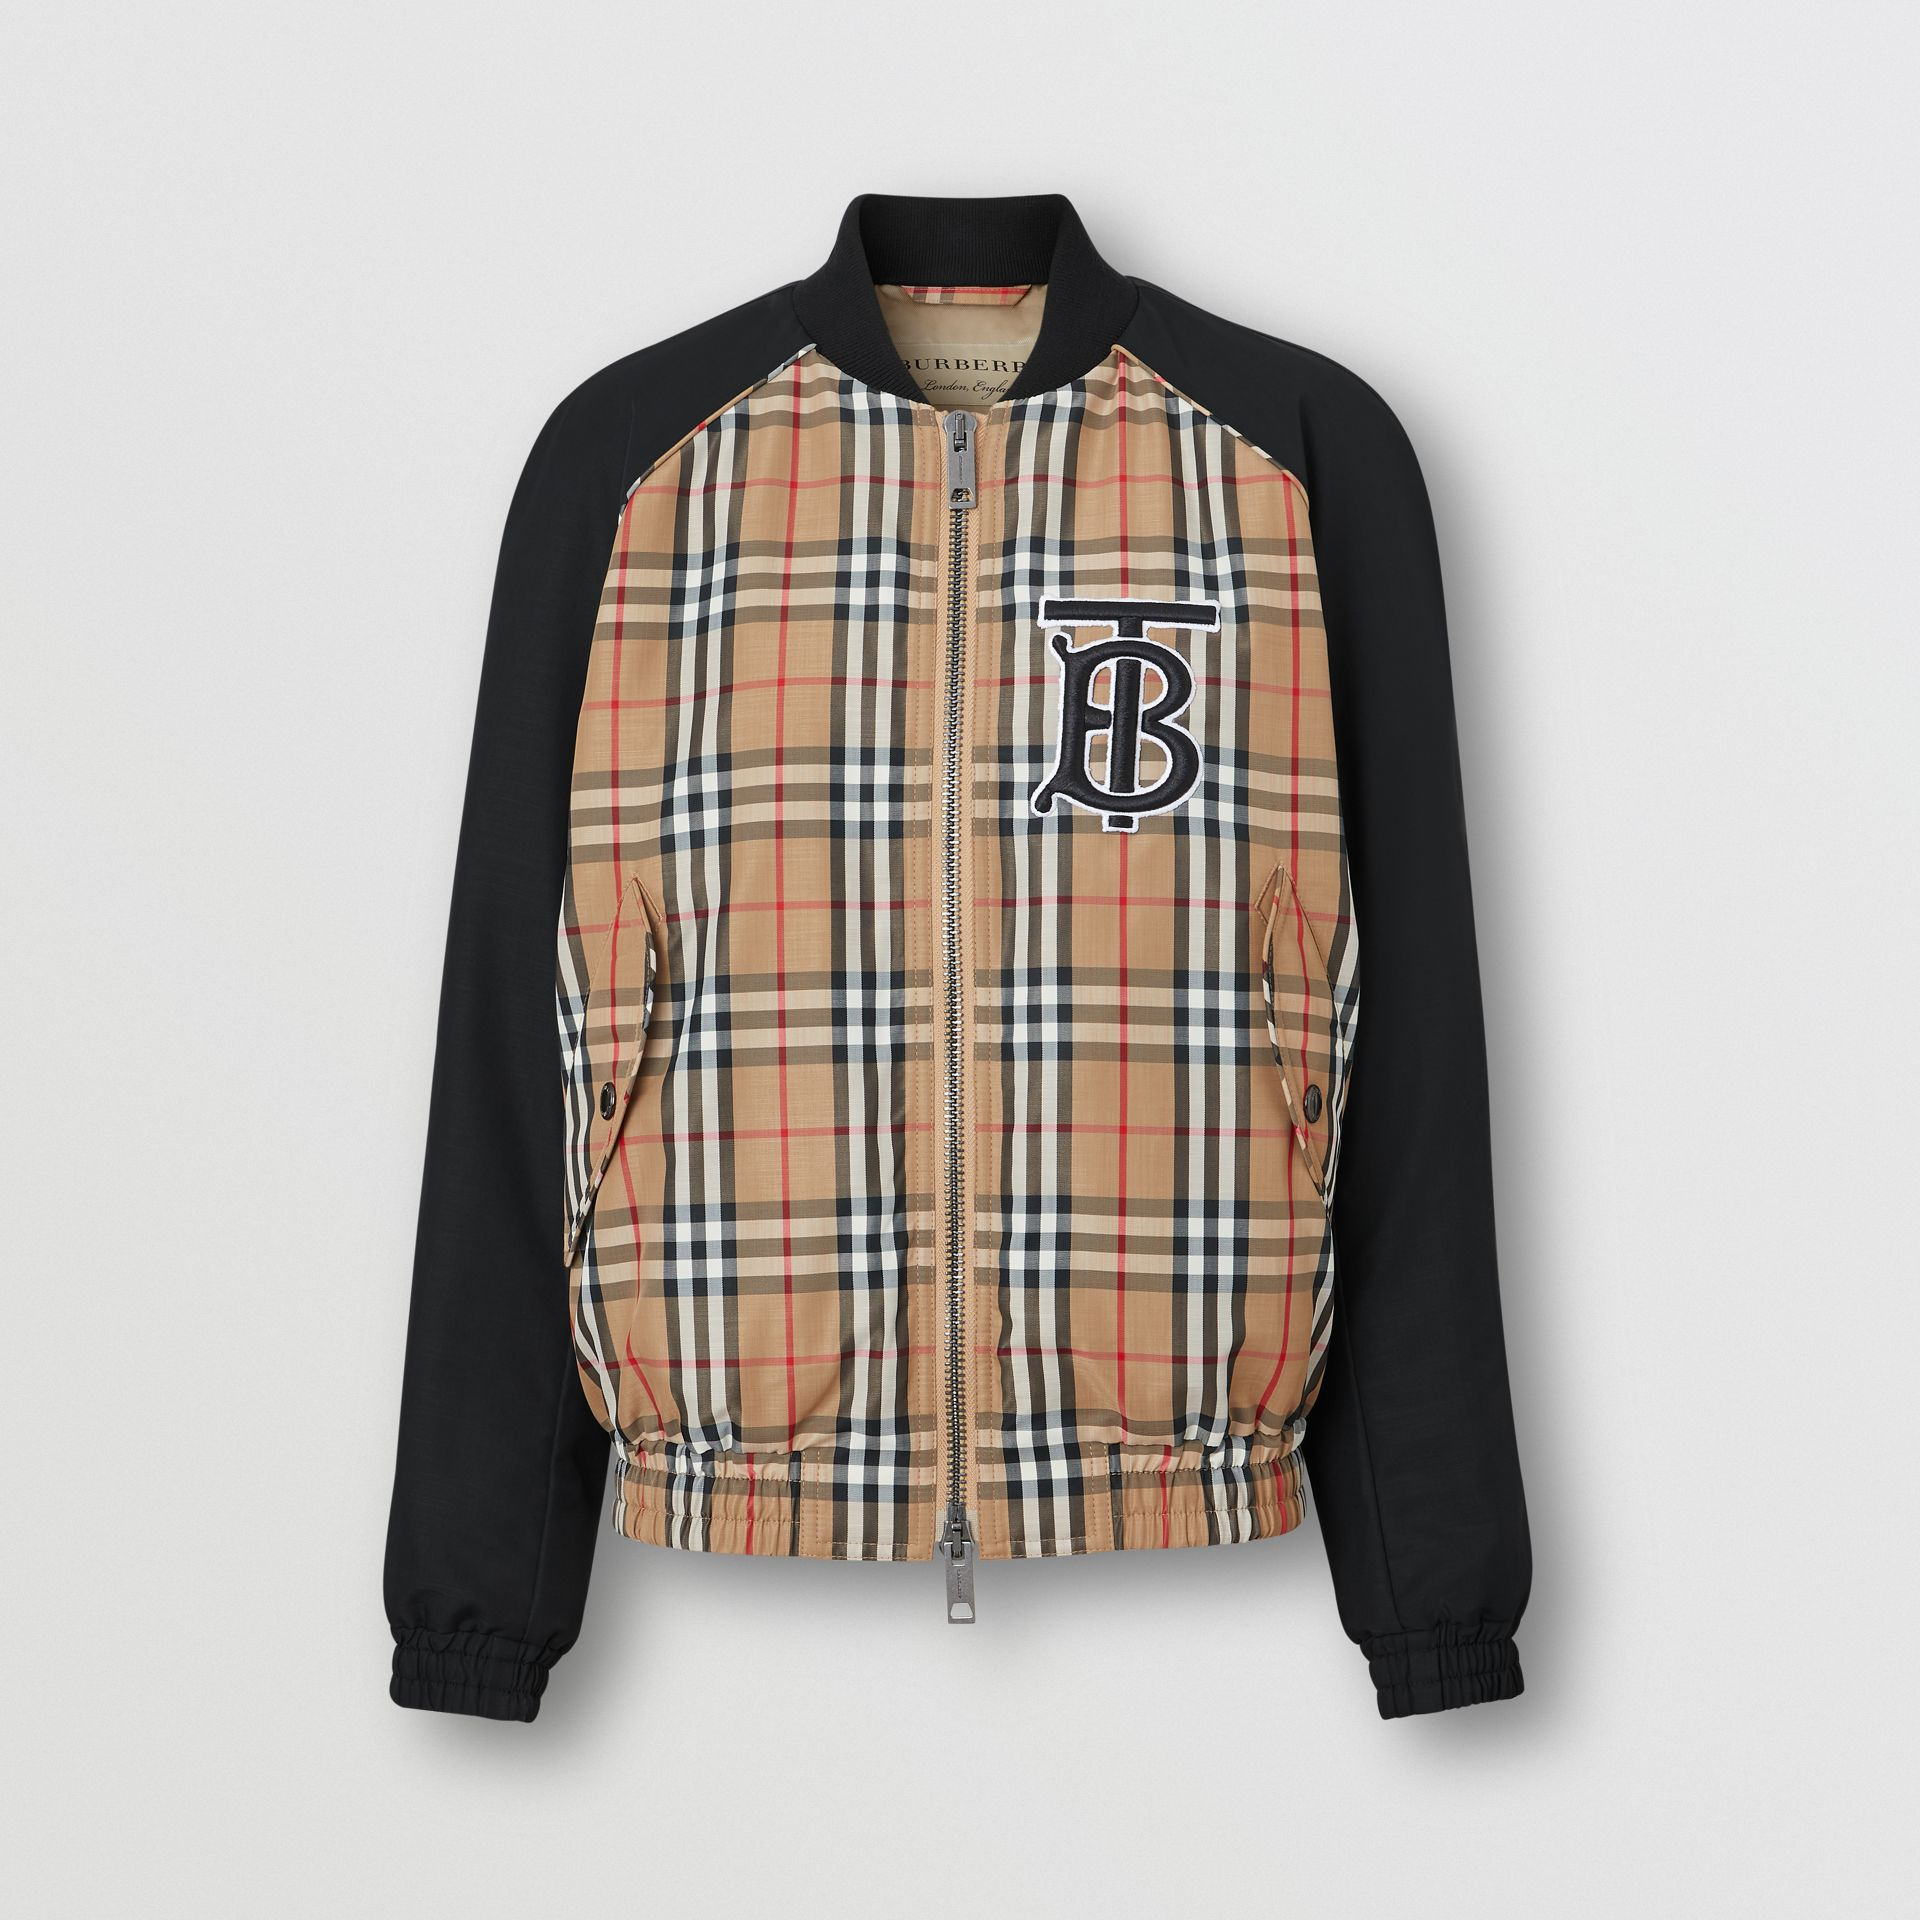 Monogram Motif Vintage Check Bomber Jacket in Black - Women | Burberry Singapore - gallery image 3